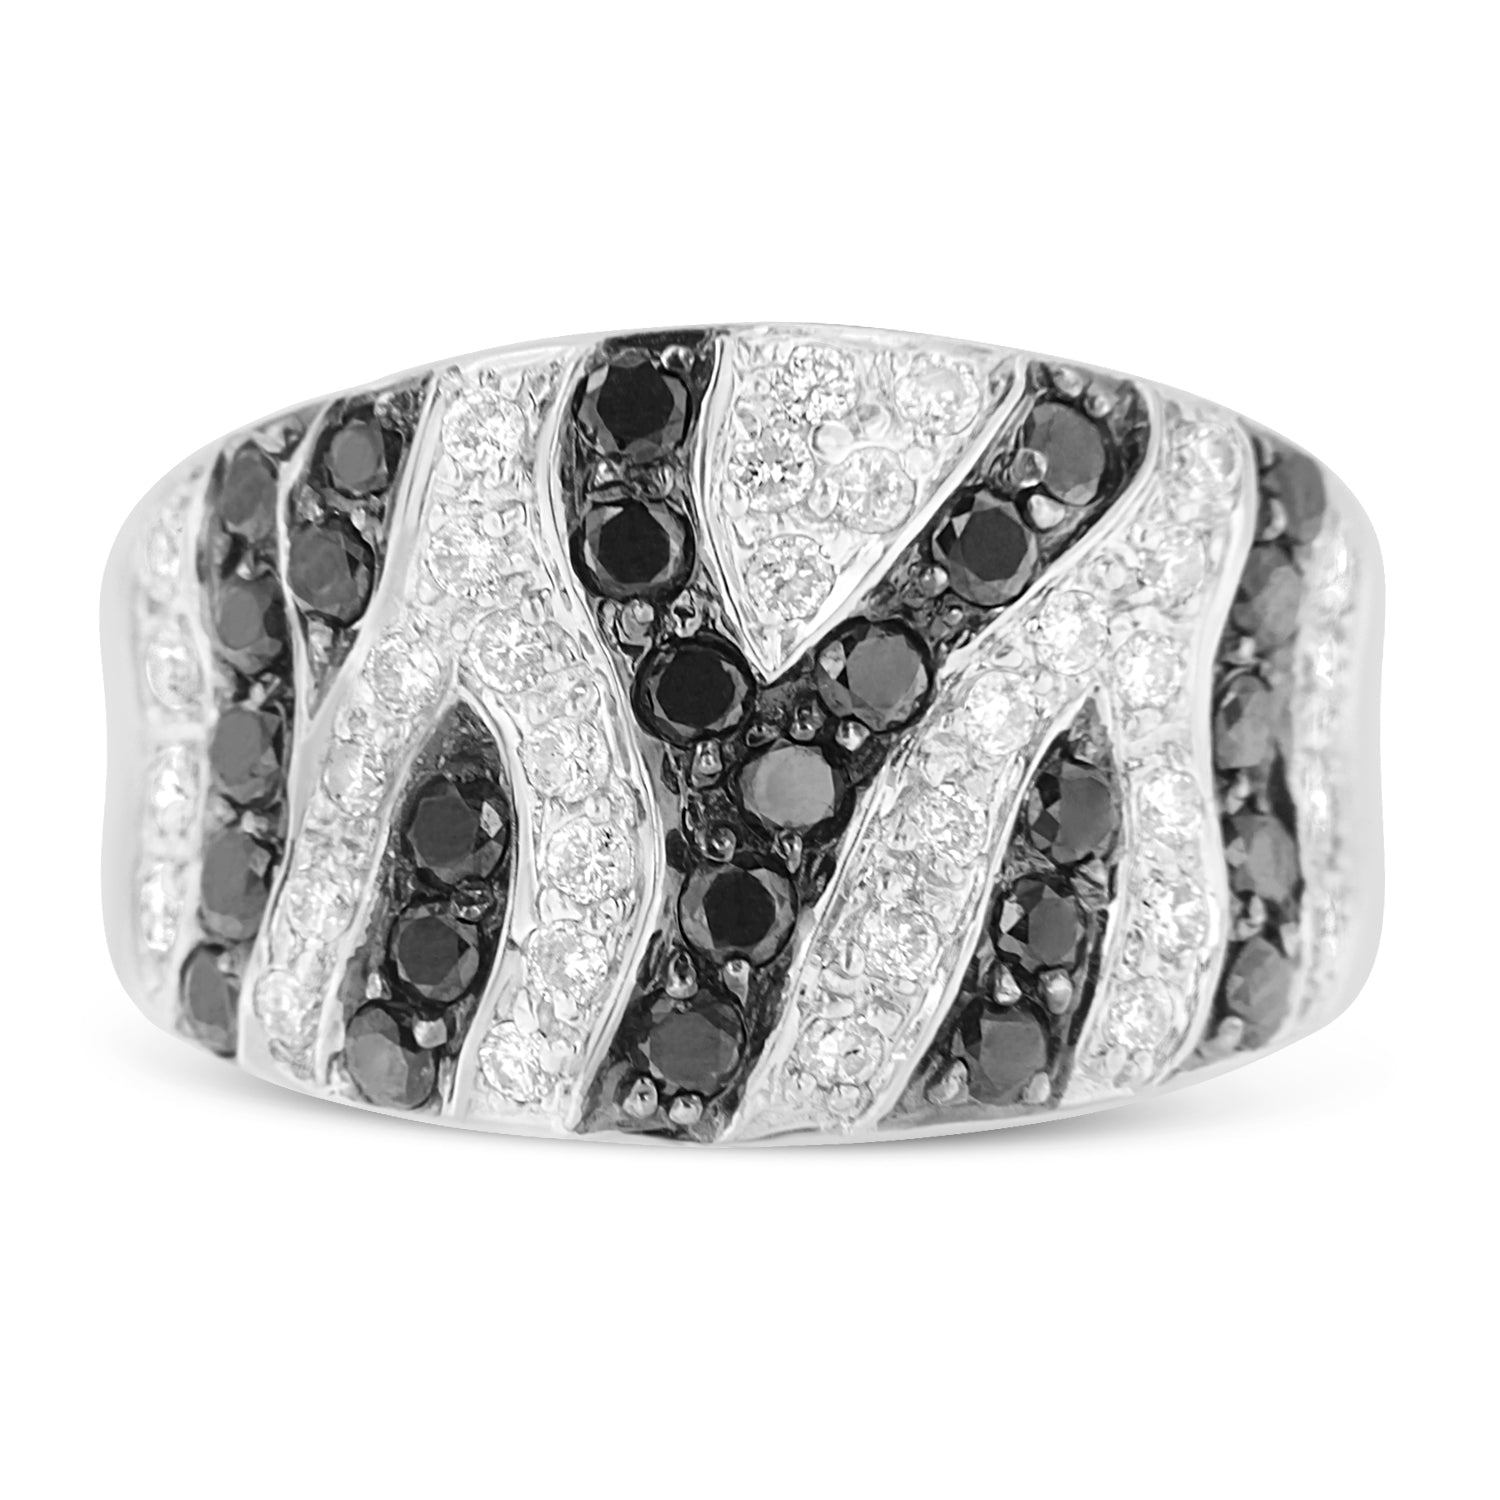 14k White Gold Treated Black Diamond Cluster Ring